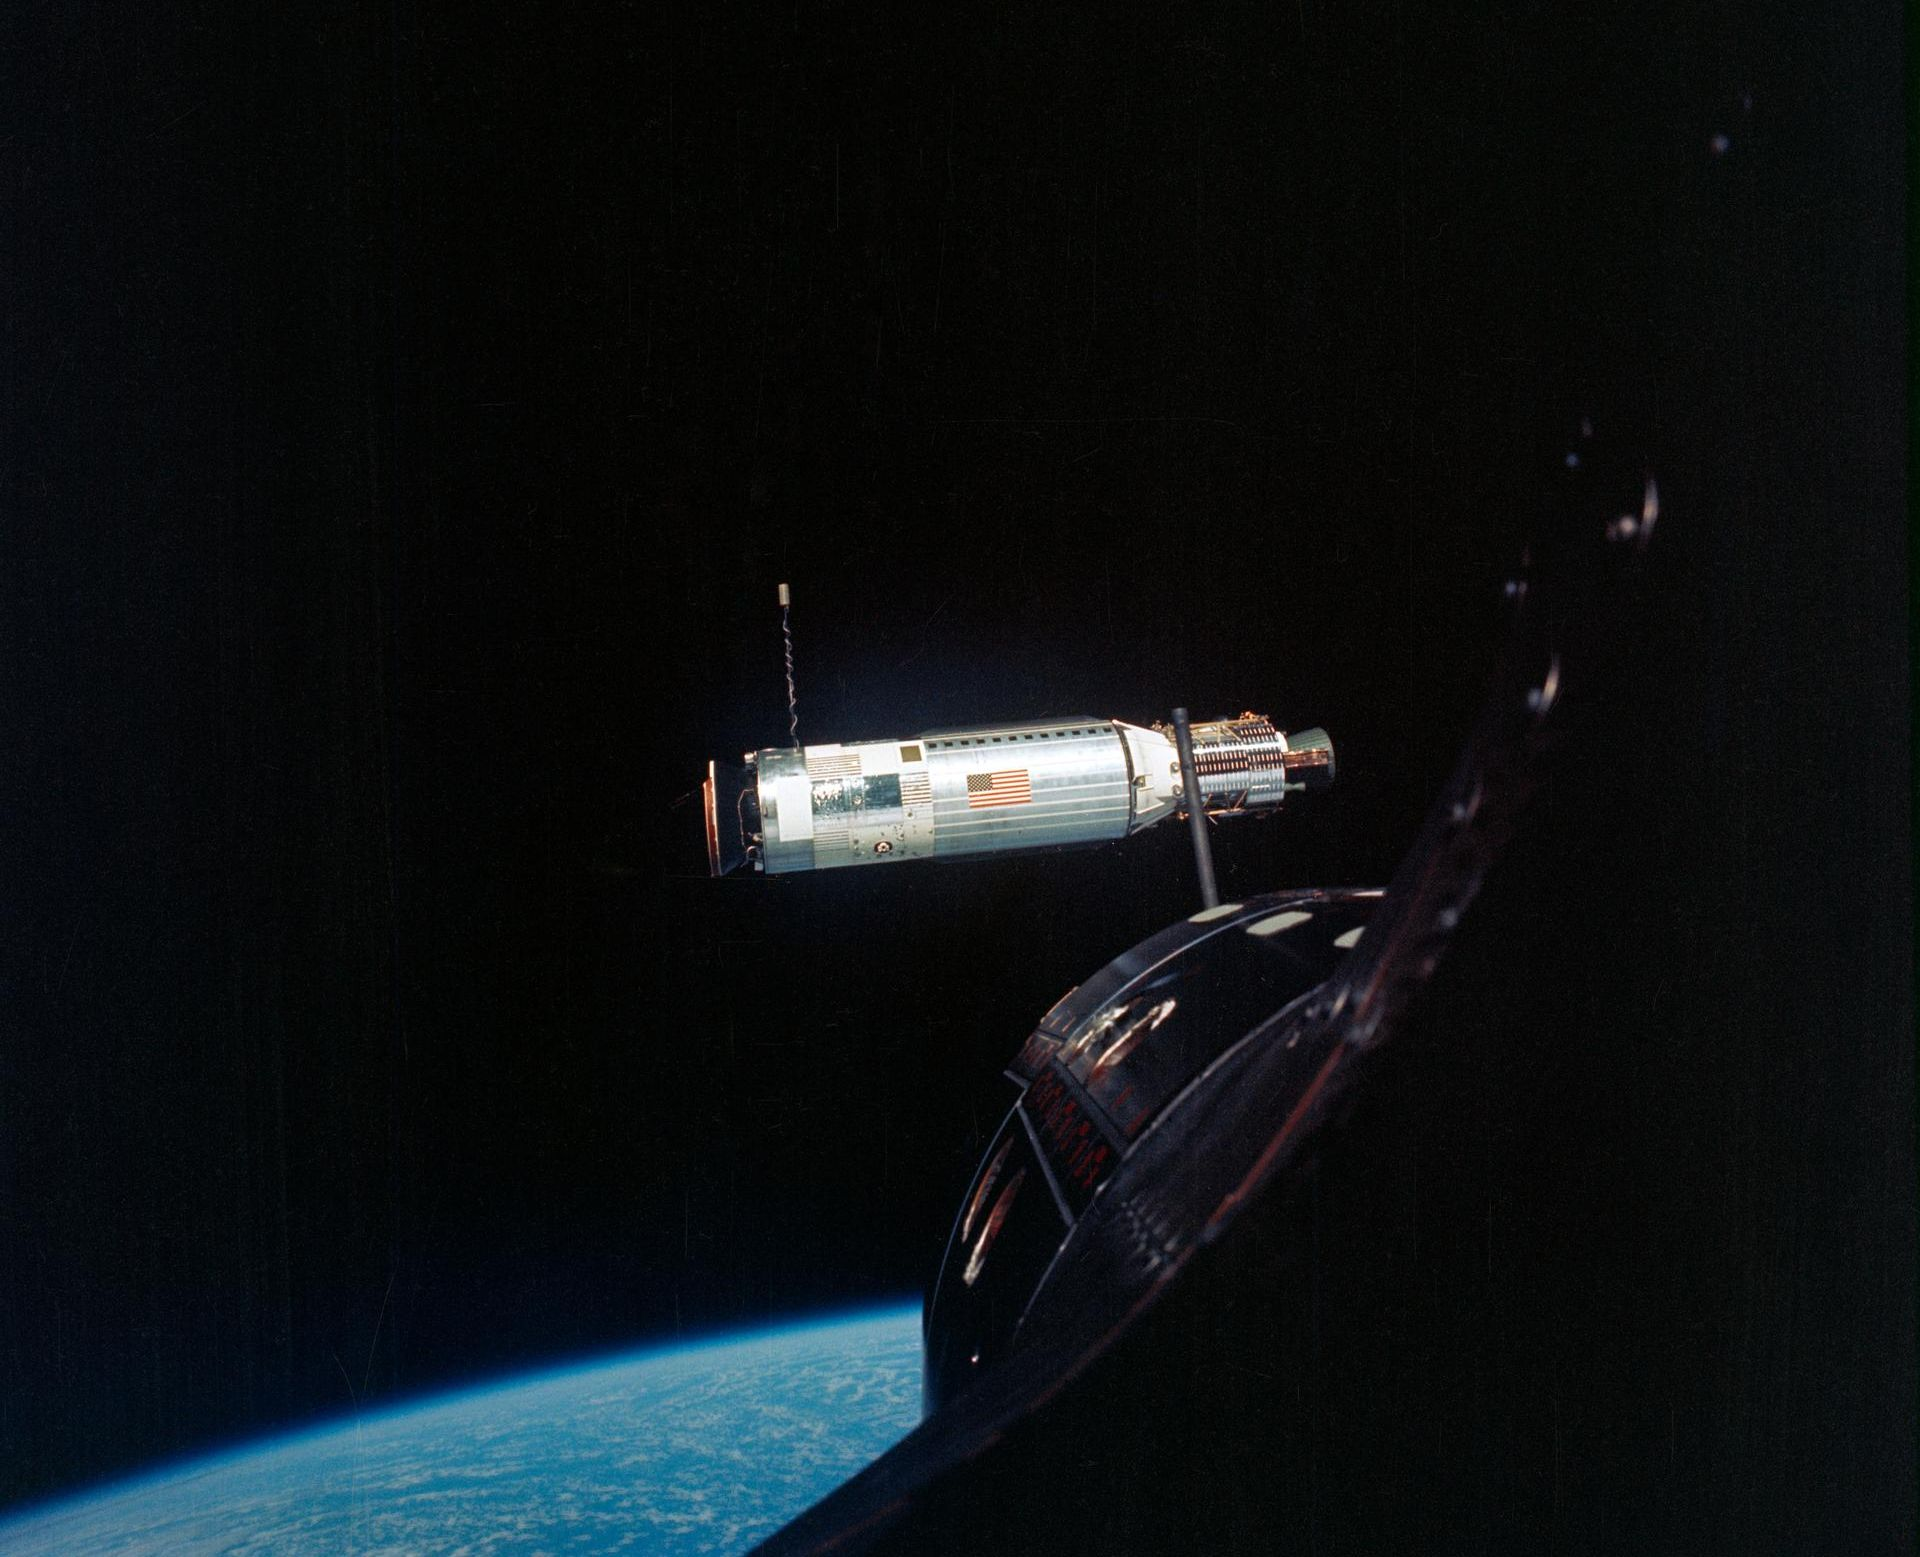 The Agena Target Docking Vehicle is photographed from the Gemini-10 spacecraft during rendezvous in space. They are 41 feet (about 12.5 meters) apart.